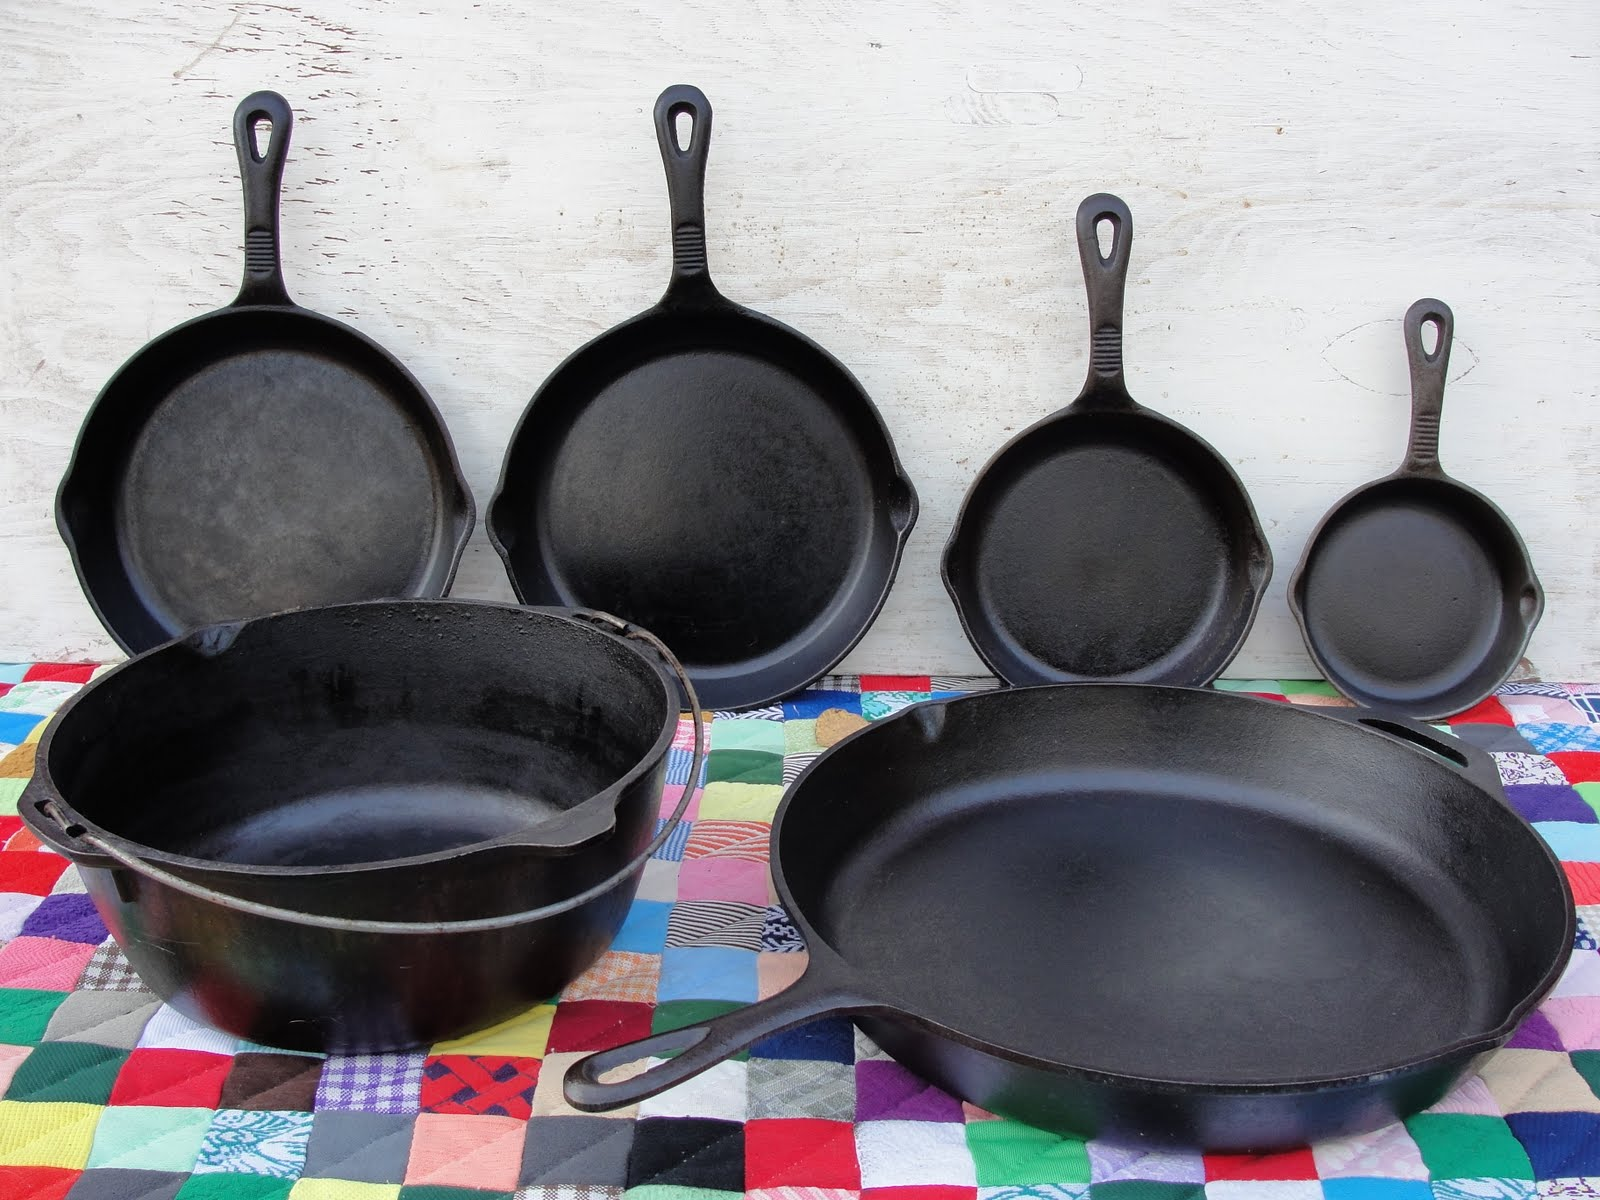 Rise and shine cooking with cast iron